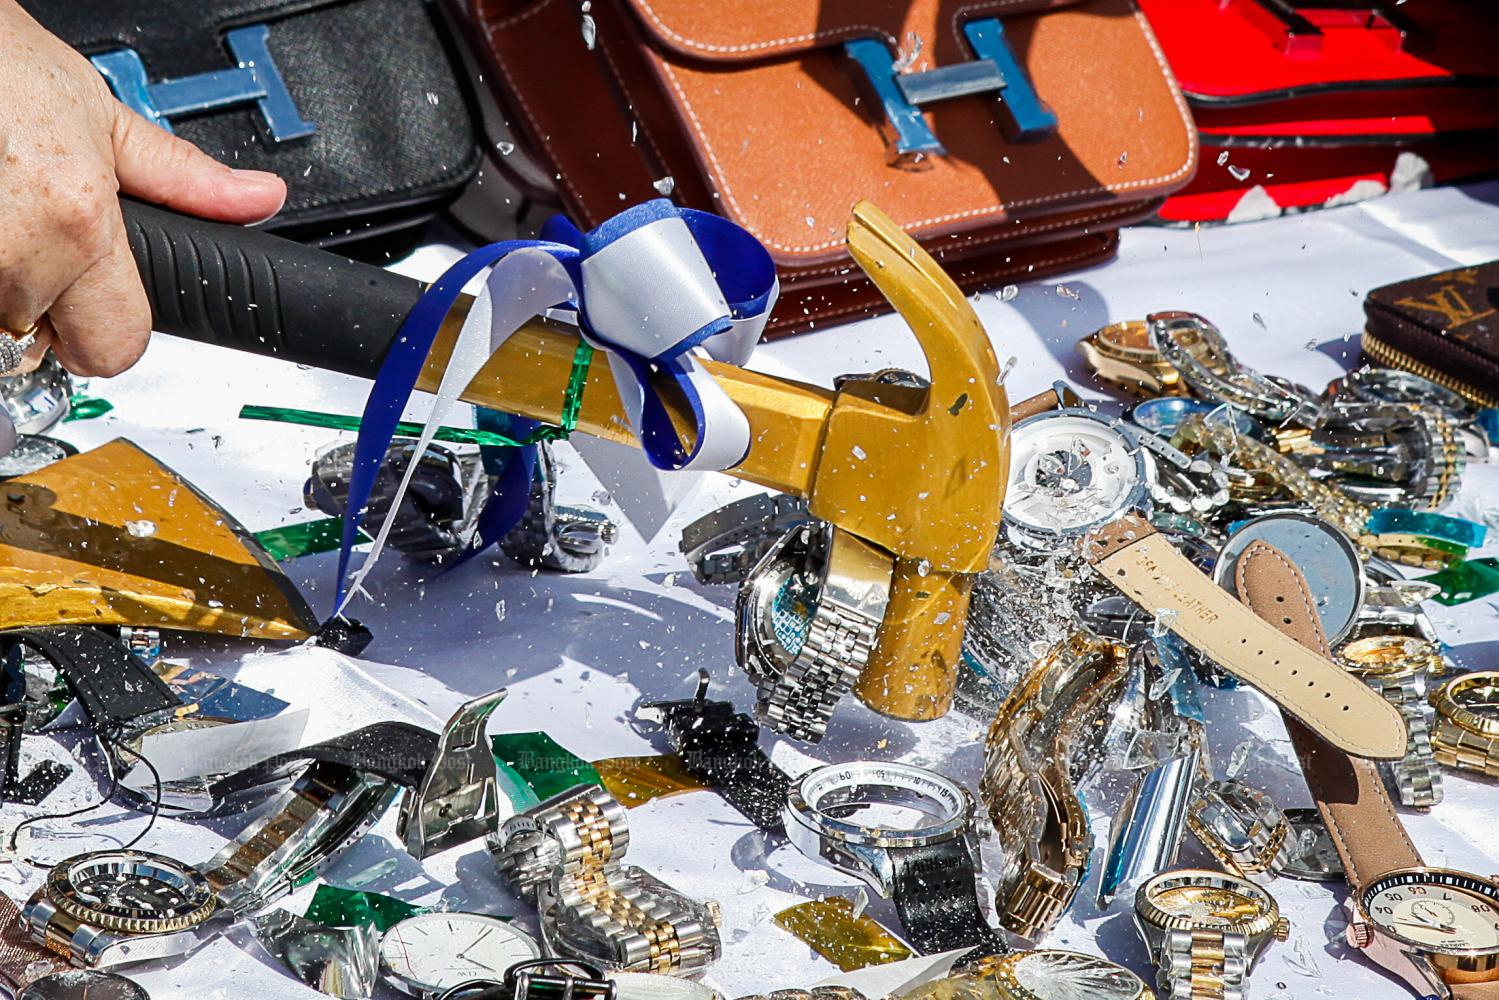 Counterfeit Rolex watches are among the more than 10 million seized items to be destroyed by the Customs Department. (Photo byWatcharawit Phudork)